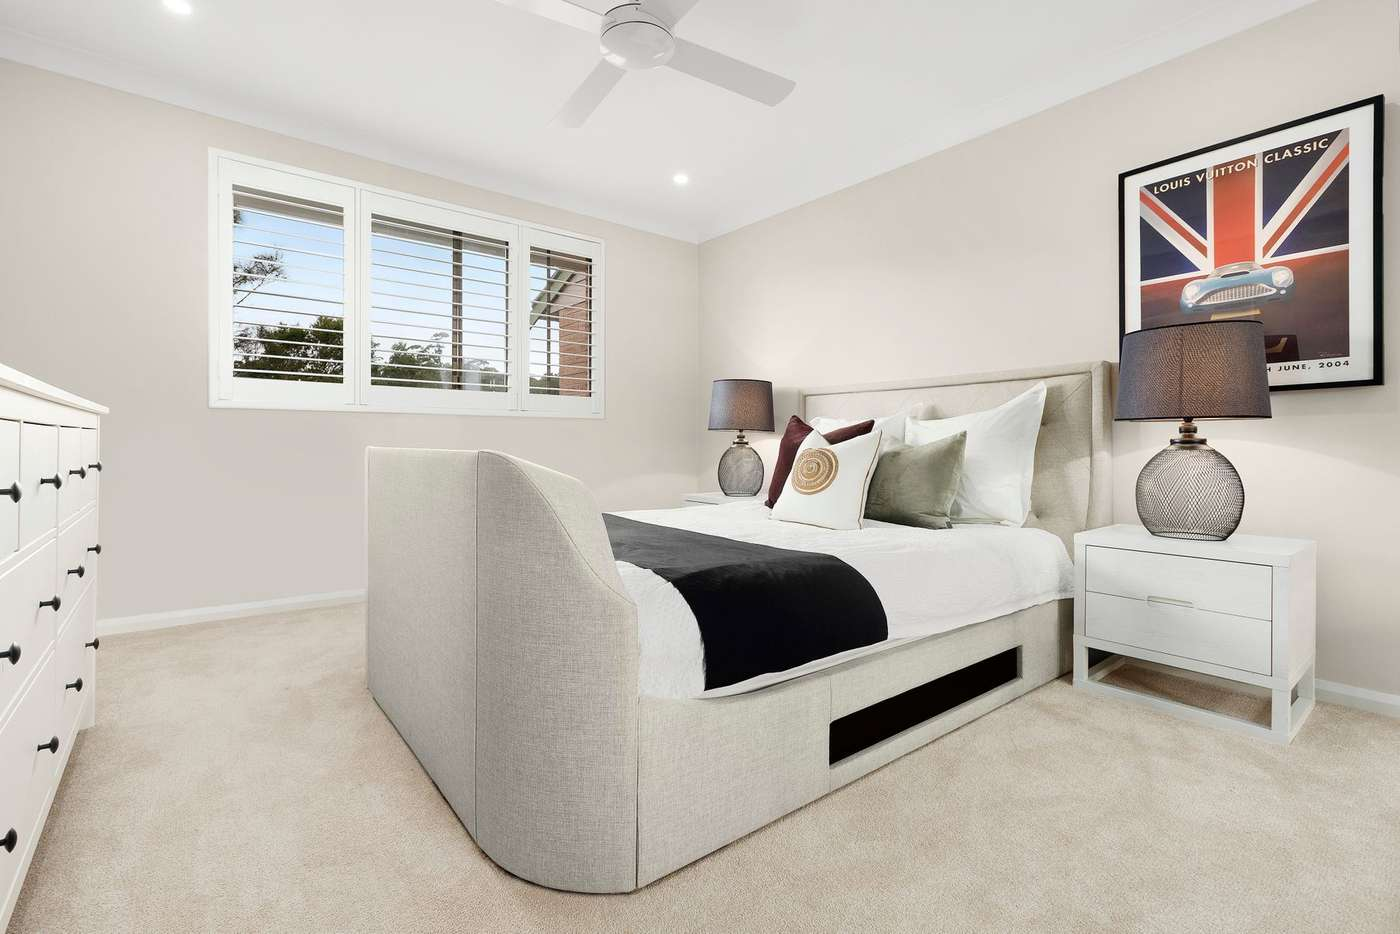 Sixth view of Homely apartment listing, 157/25 Best Street, Lane Cove NSW 2066